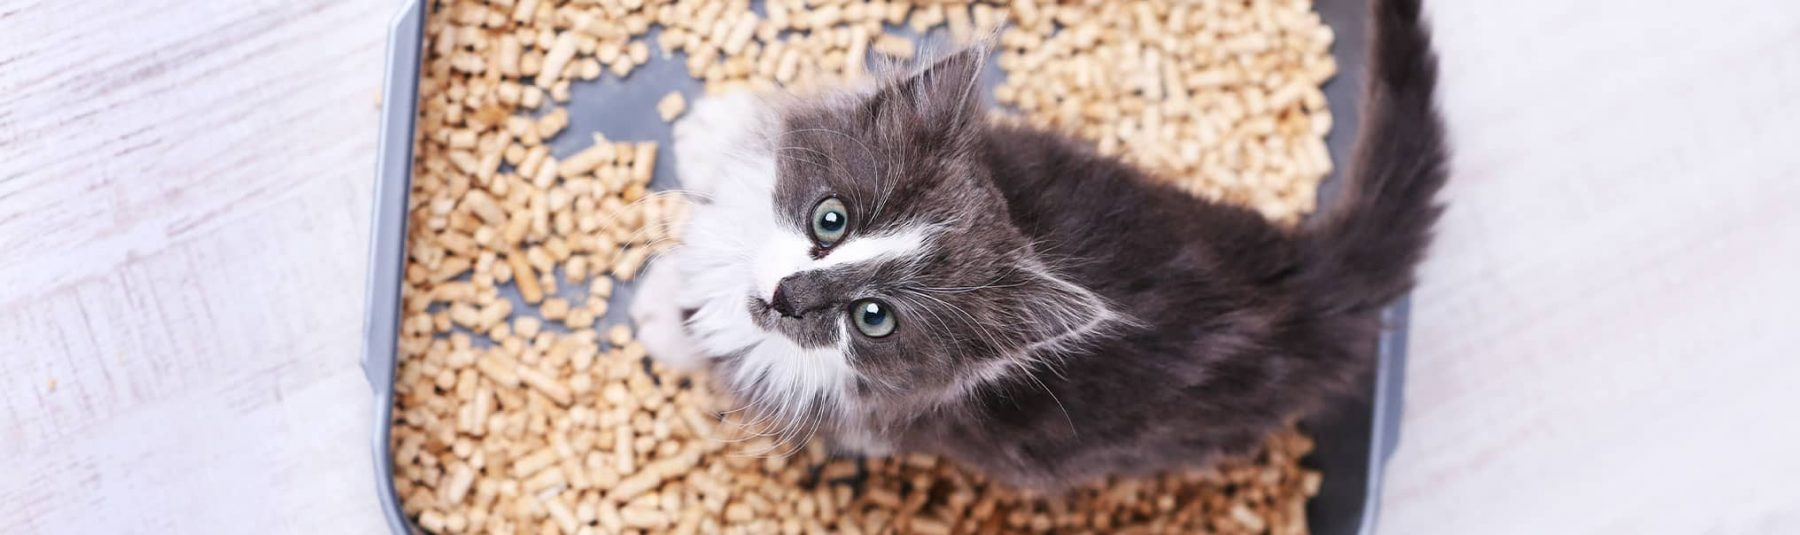 Kitten standing in litter box